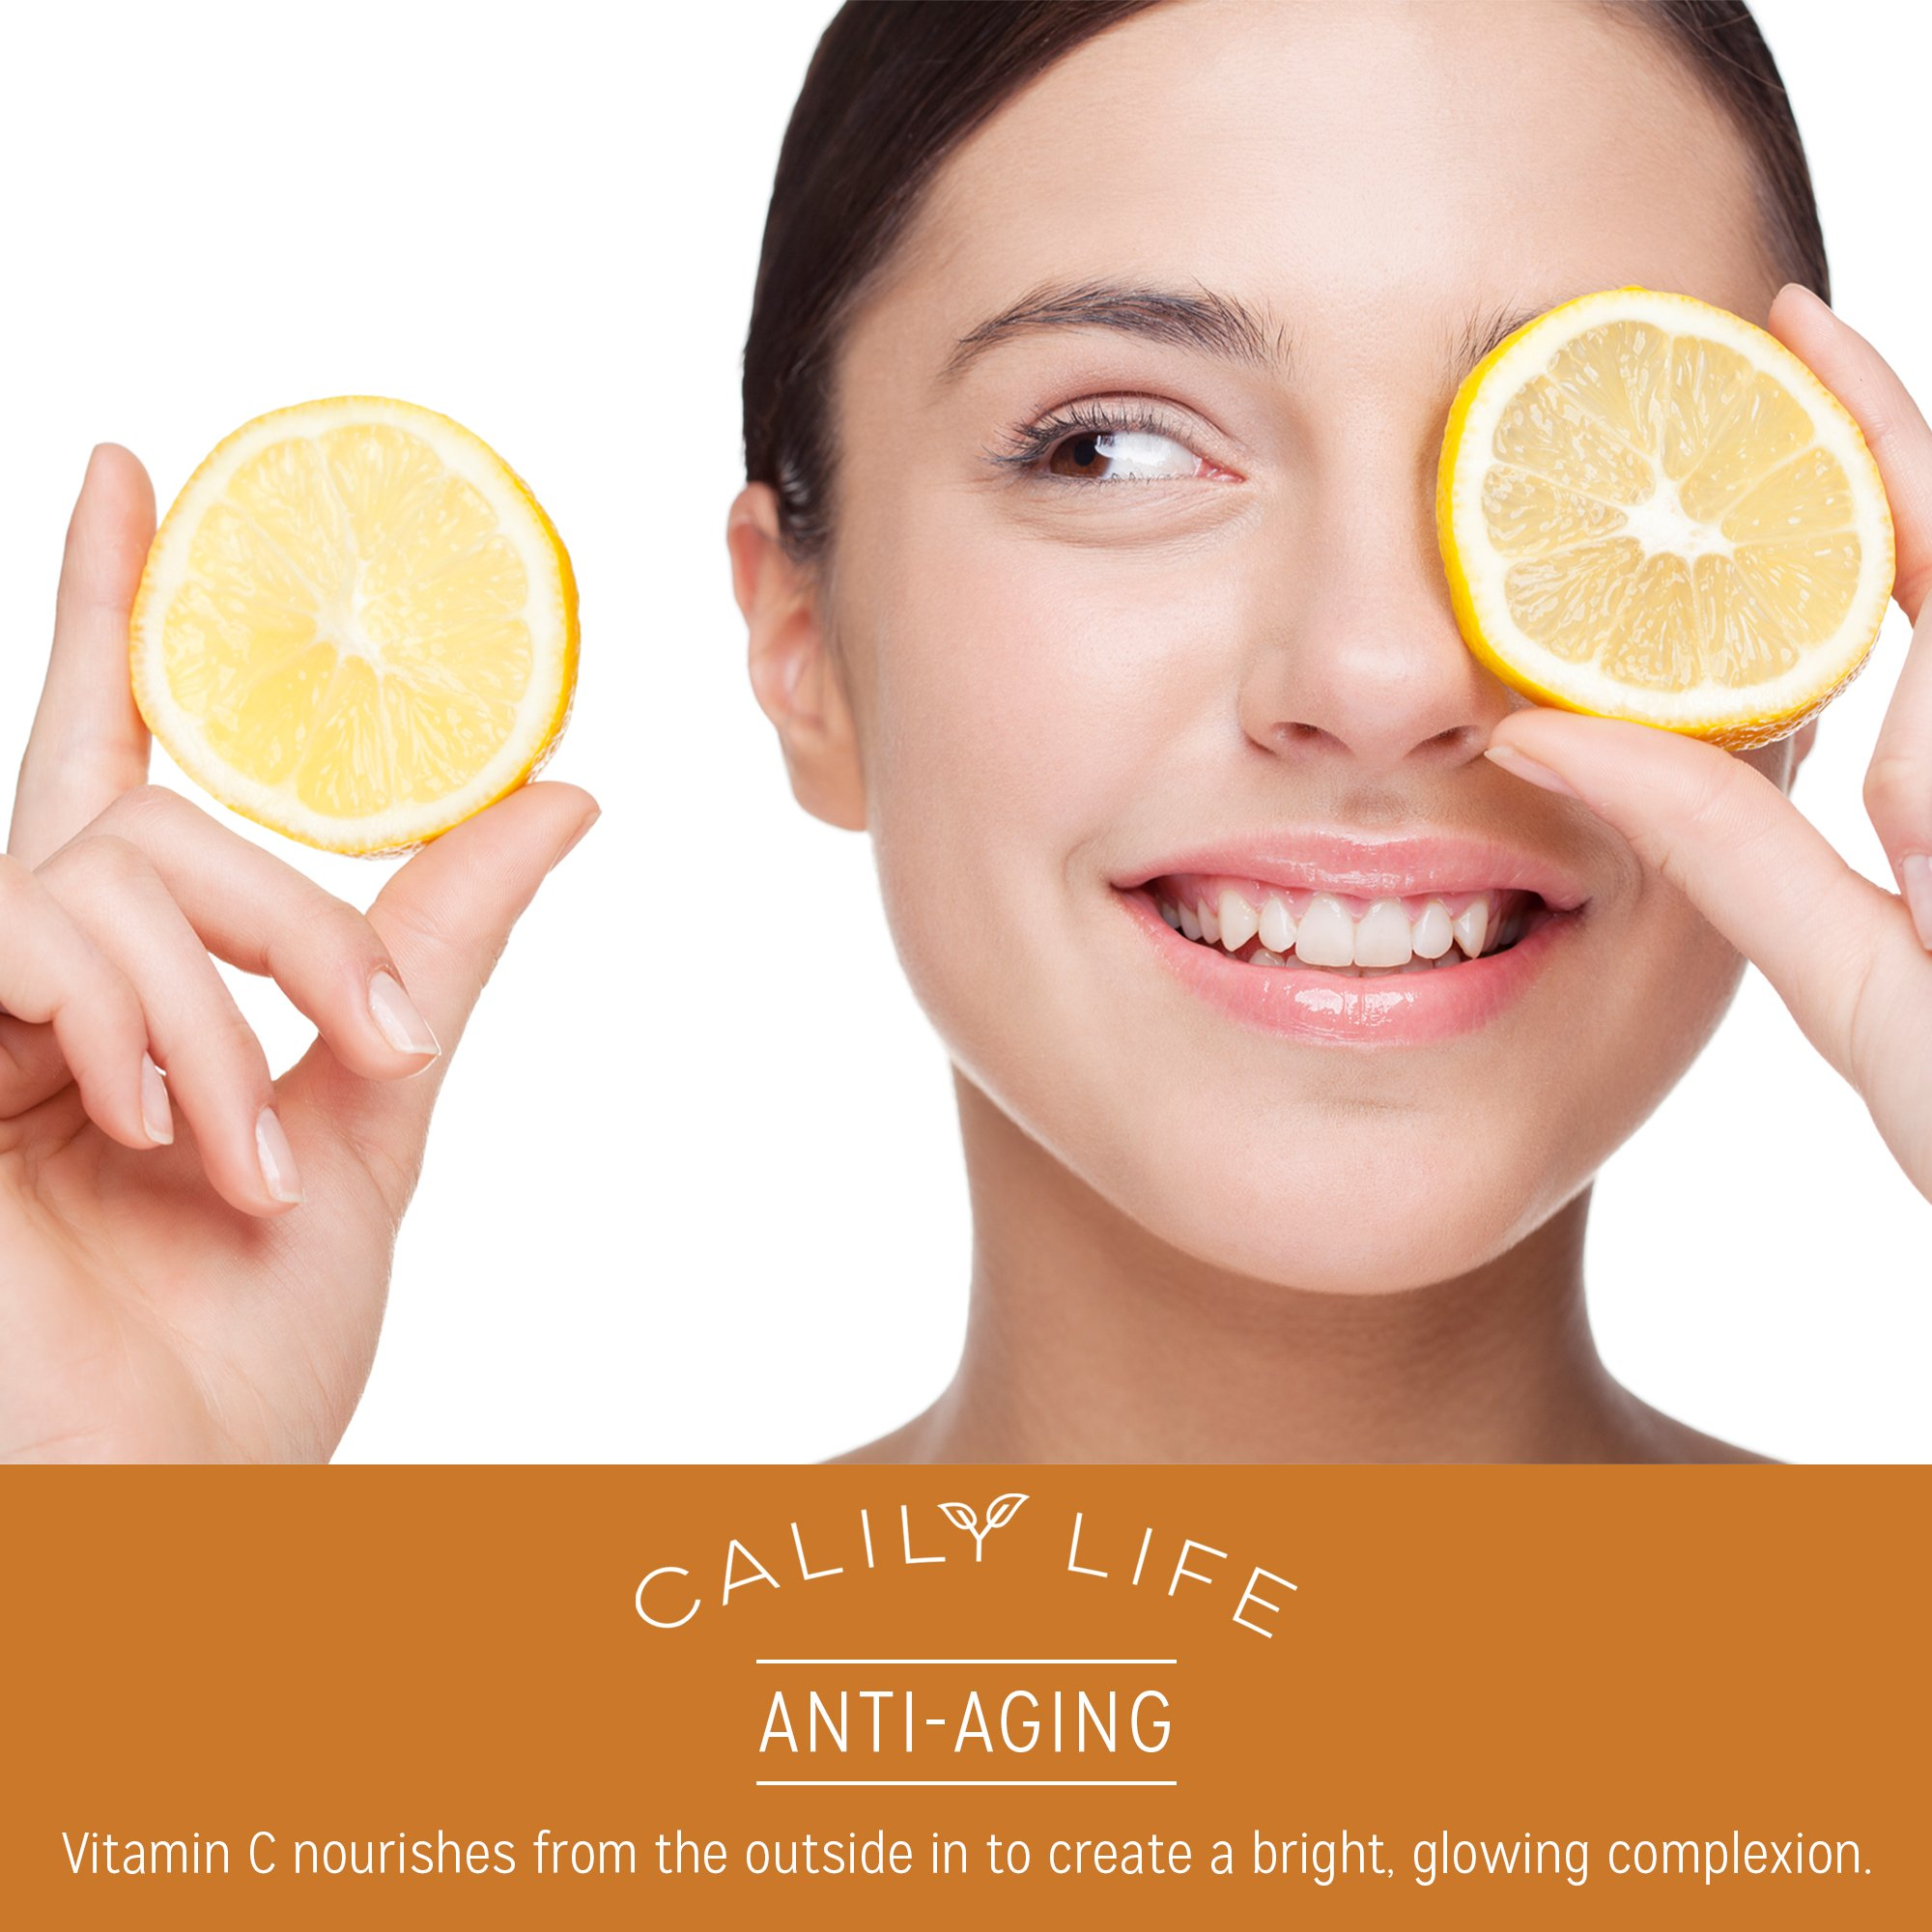 Calily Life Hyaluronic Acid Vitamin C Serum with Dead Sea Minerals, 1 Oz. – Contains Vitamins A, C, E, B5 and More - Restores Youthful Glow - Hydrates, Enrichens, Strengthens and Nourishes [ENHANCED]